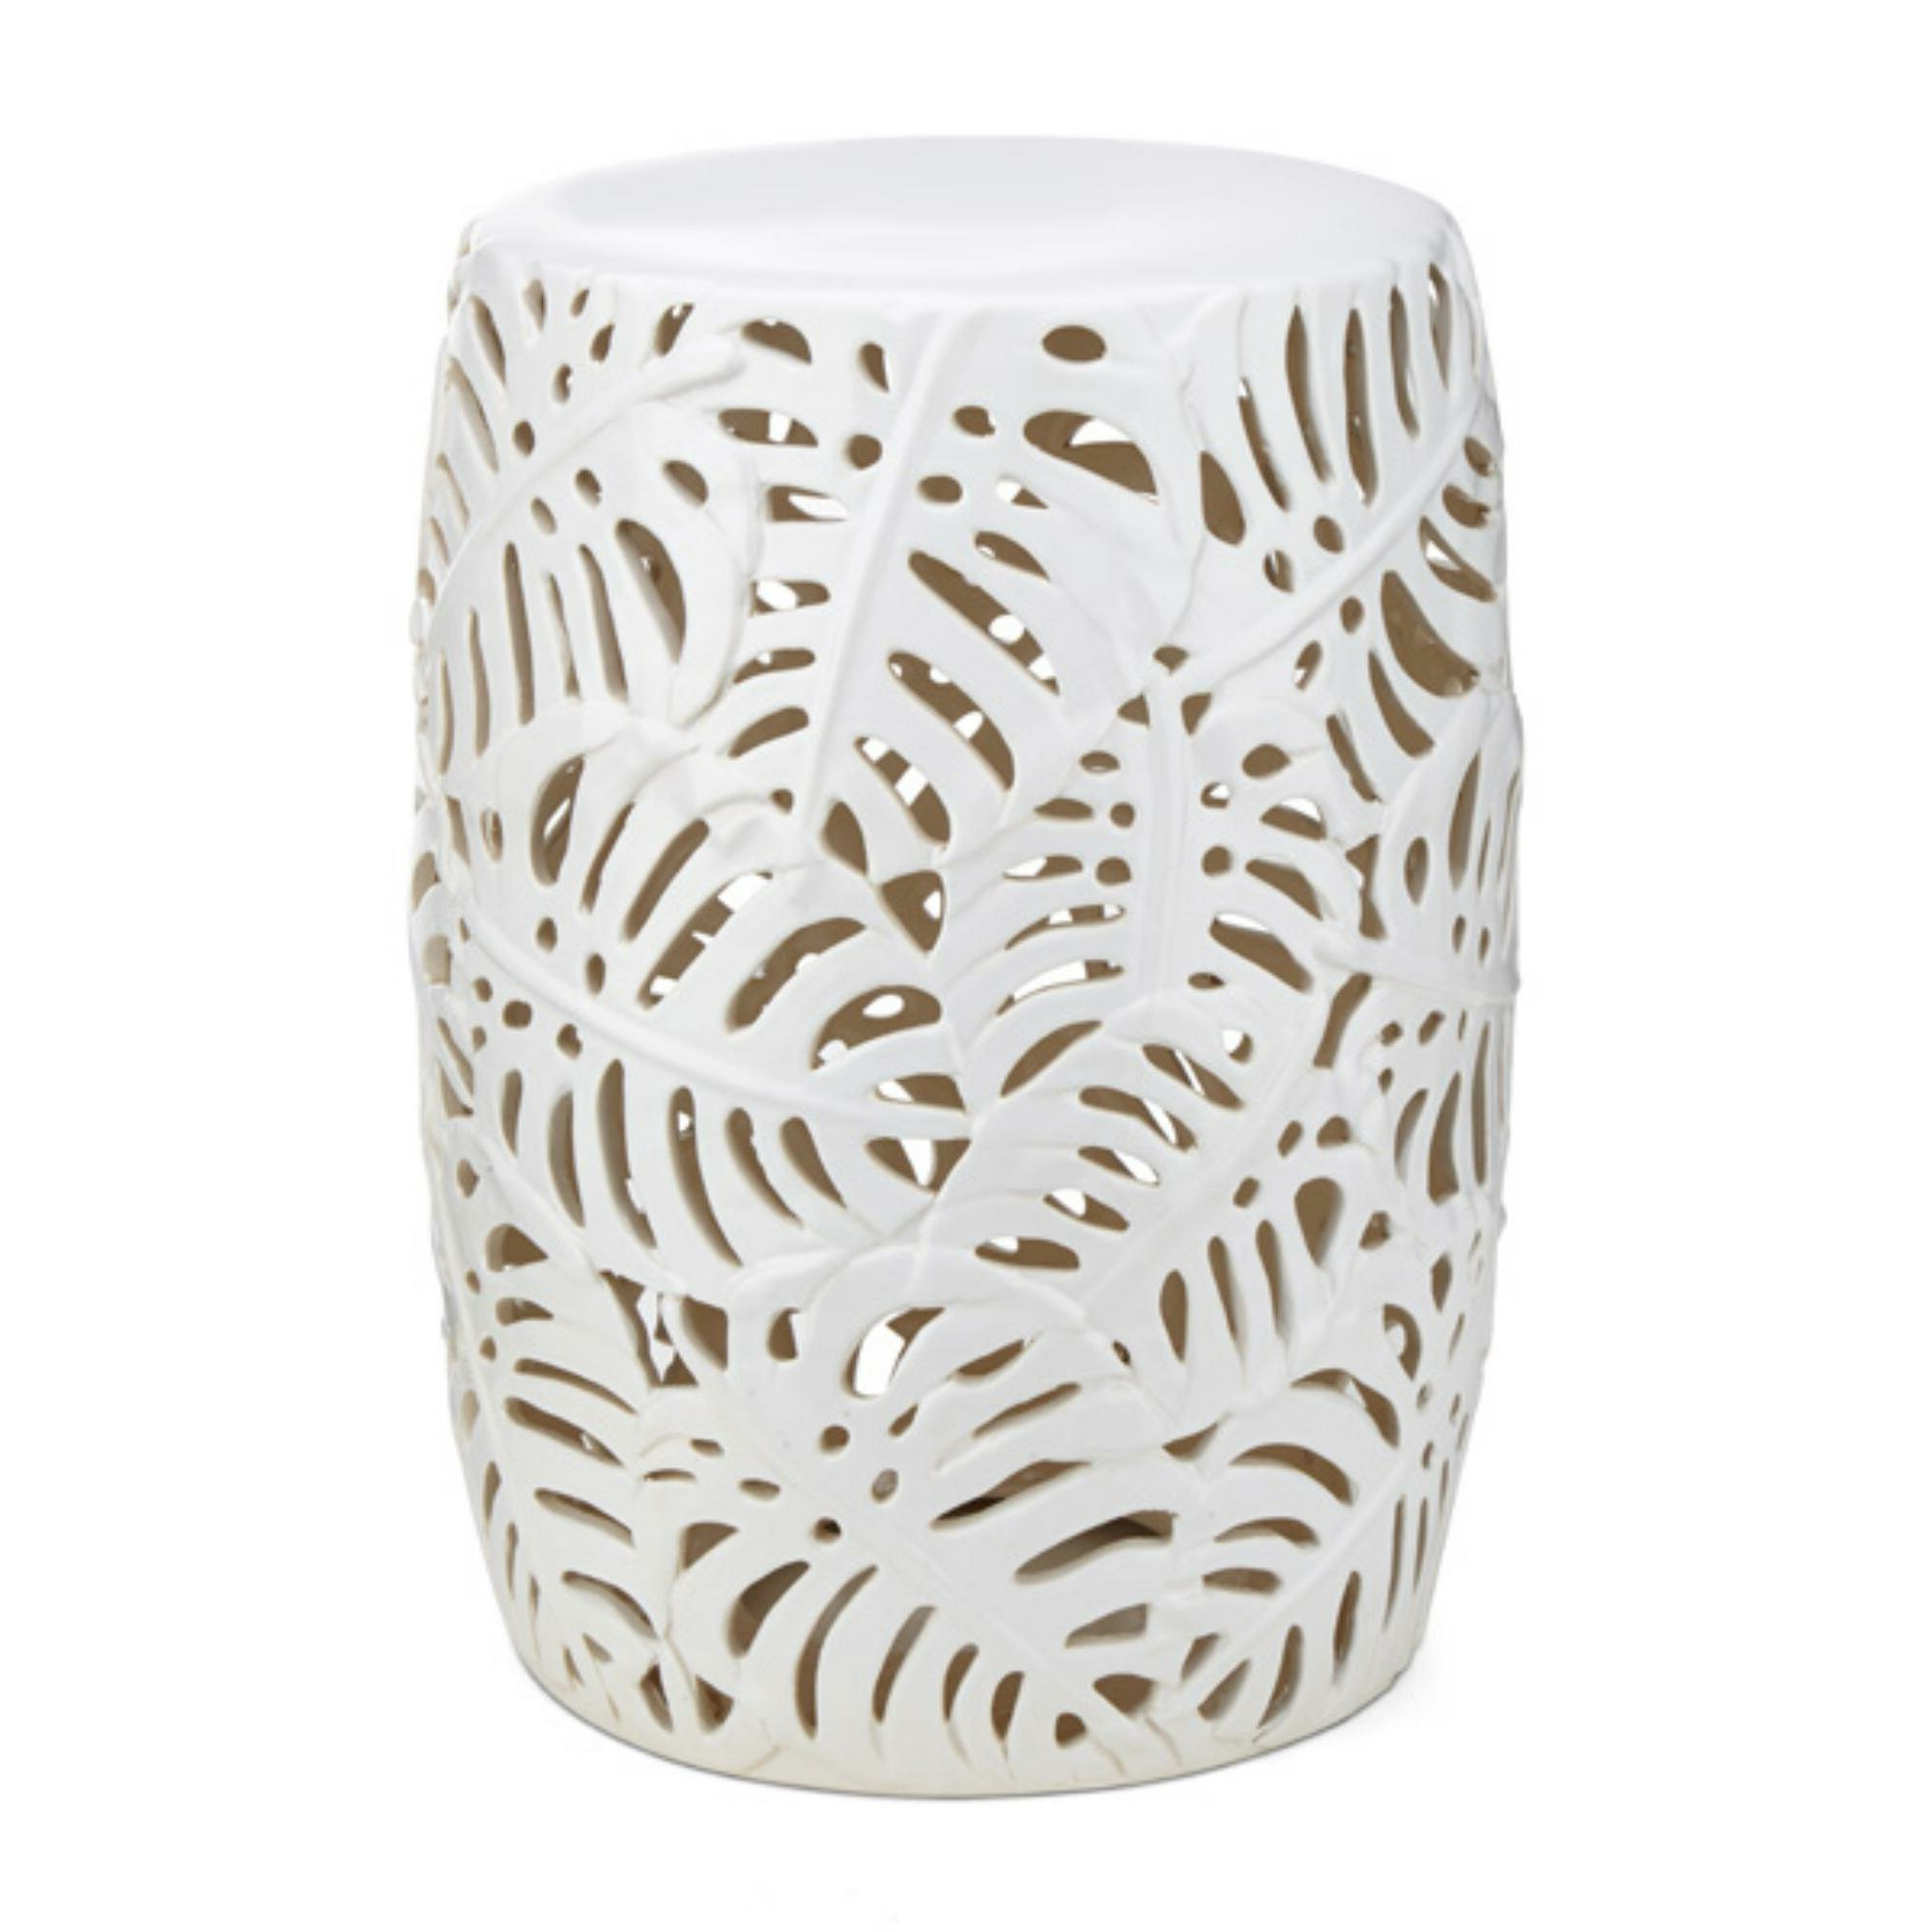 Most Recently Released Svendsen Ceramic Garden Stools Pertaining To Lachlan Palm Leaf Cutwork Pattern Ceramic Garden Stool (View 6 of 30)